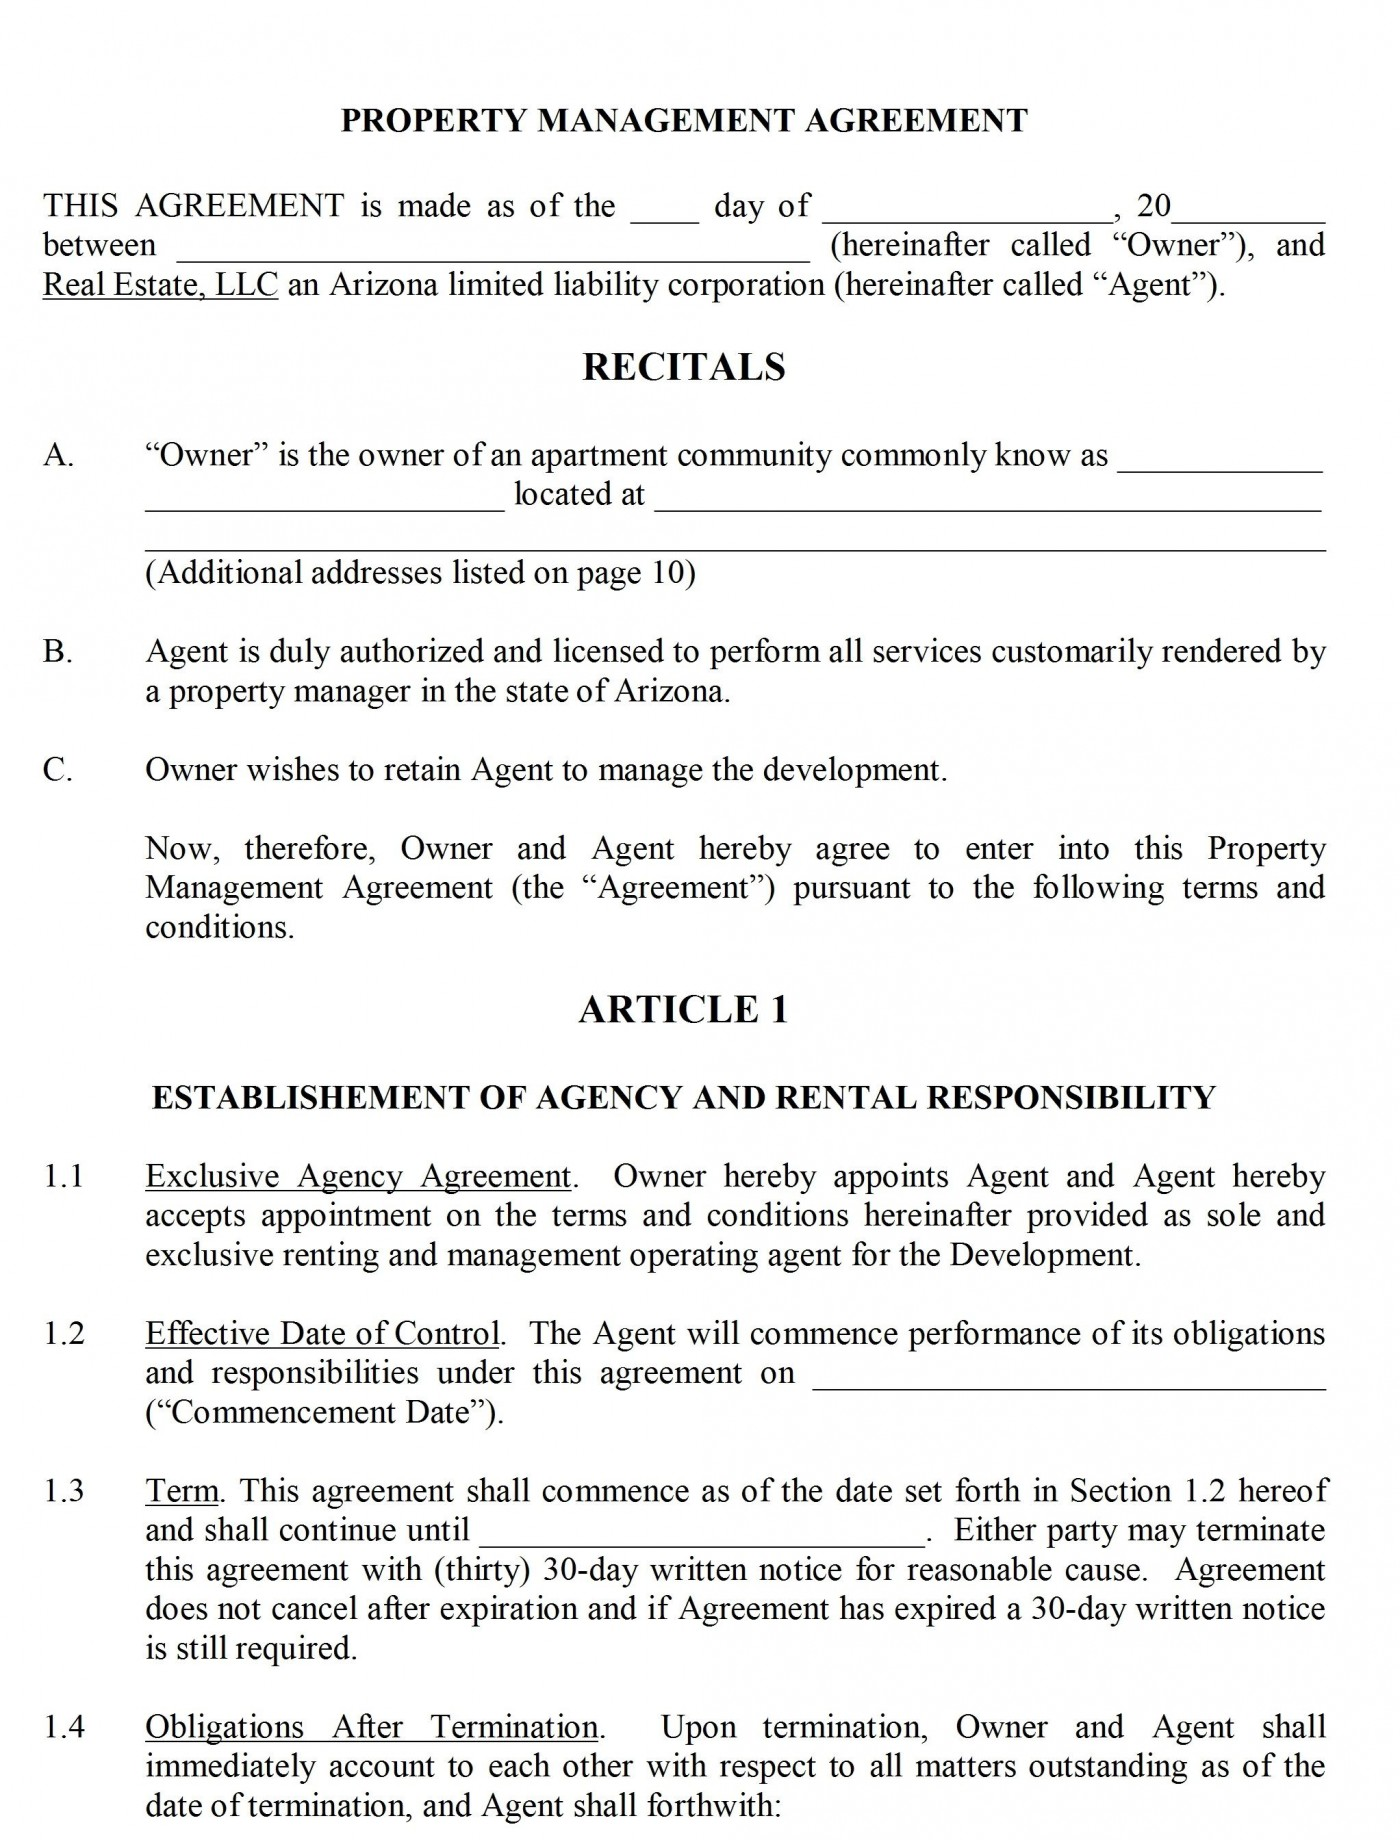 004 Shocking Property Management Contract Form Inspiration  Agreement Template Ontario1400